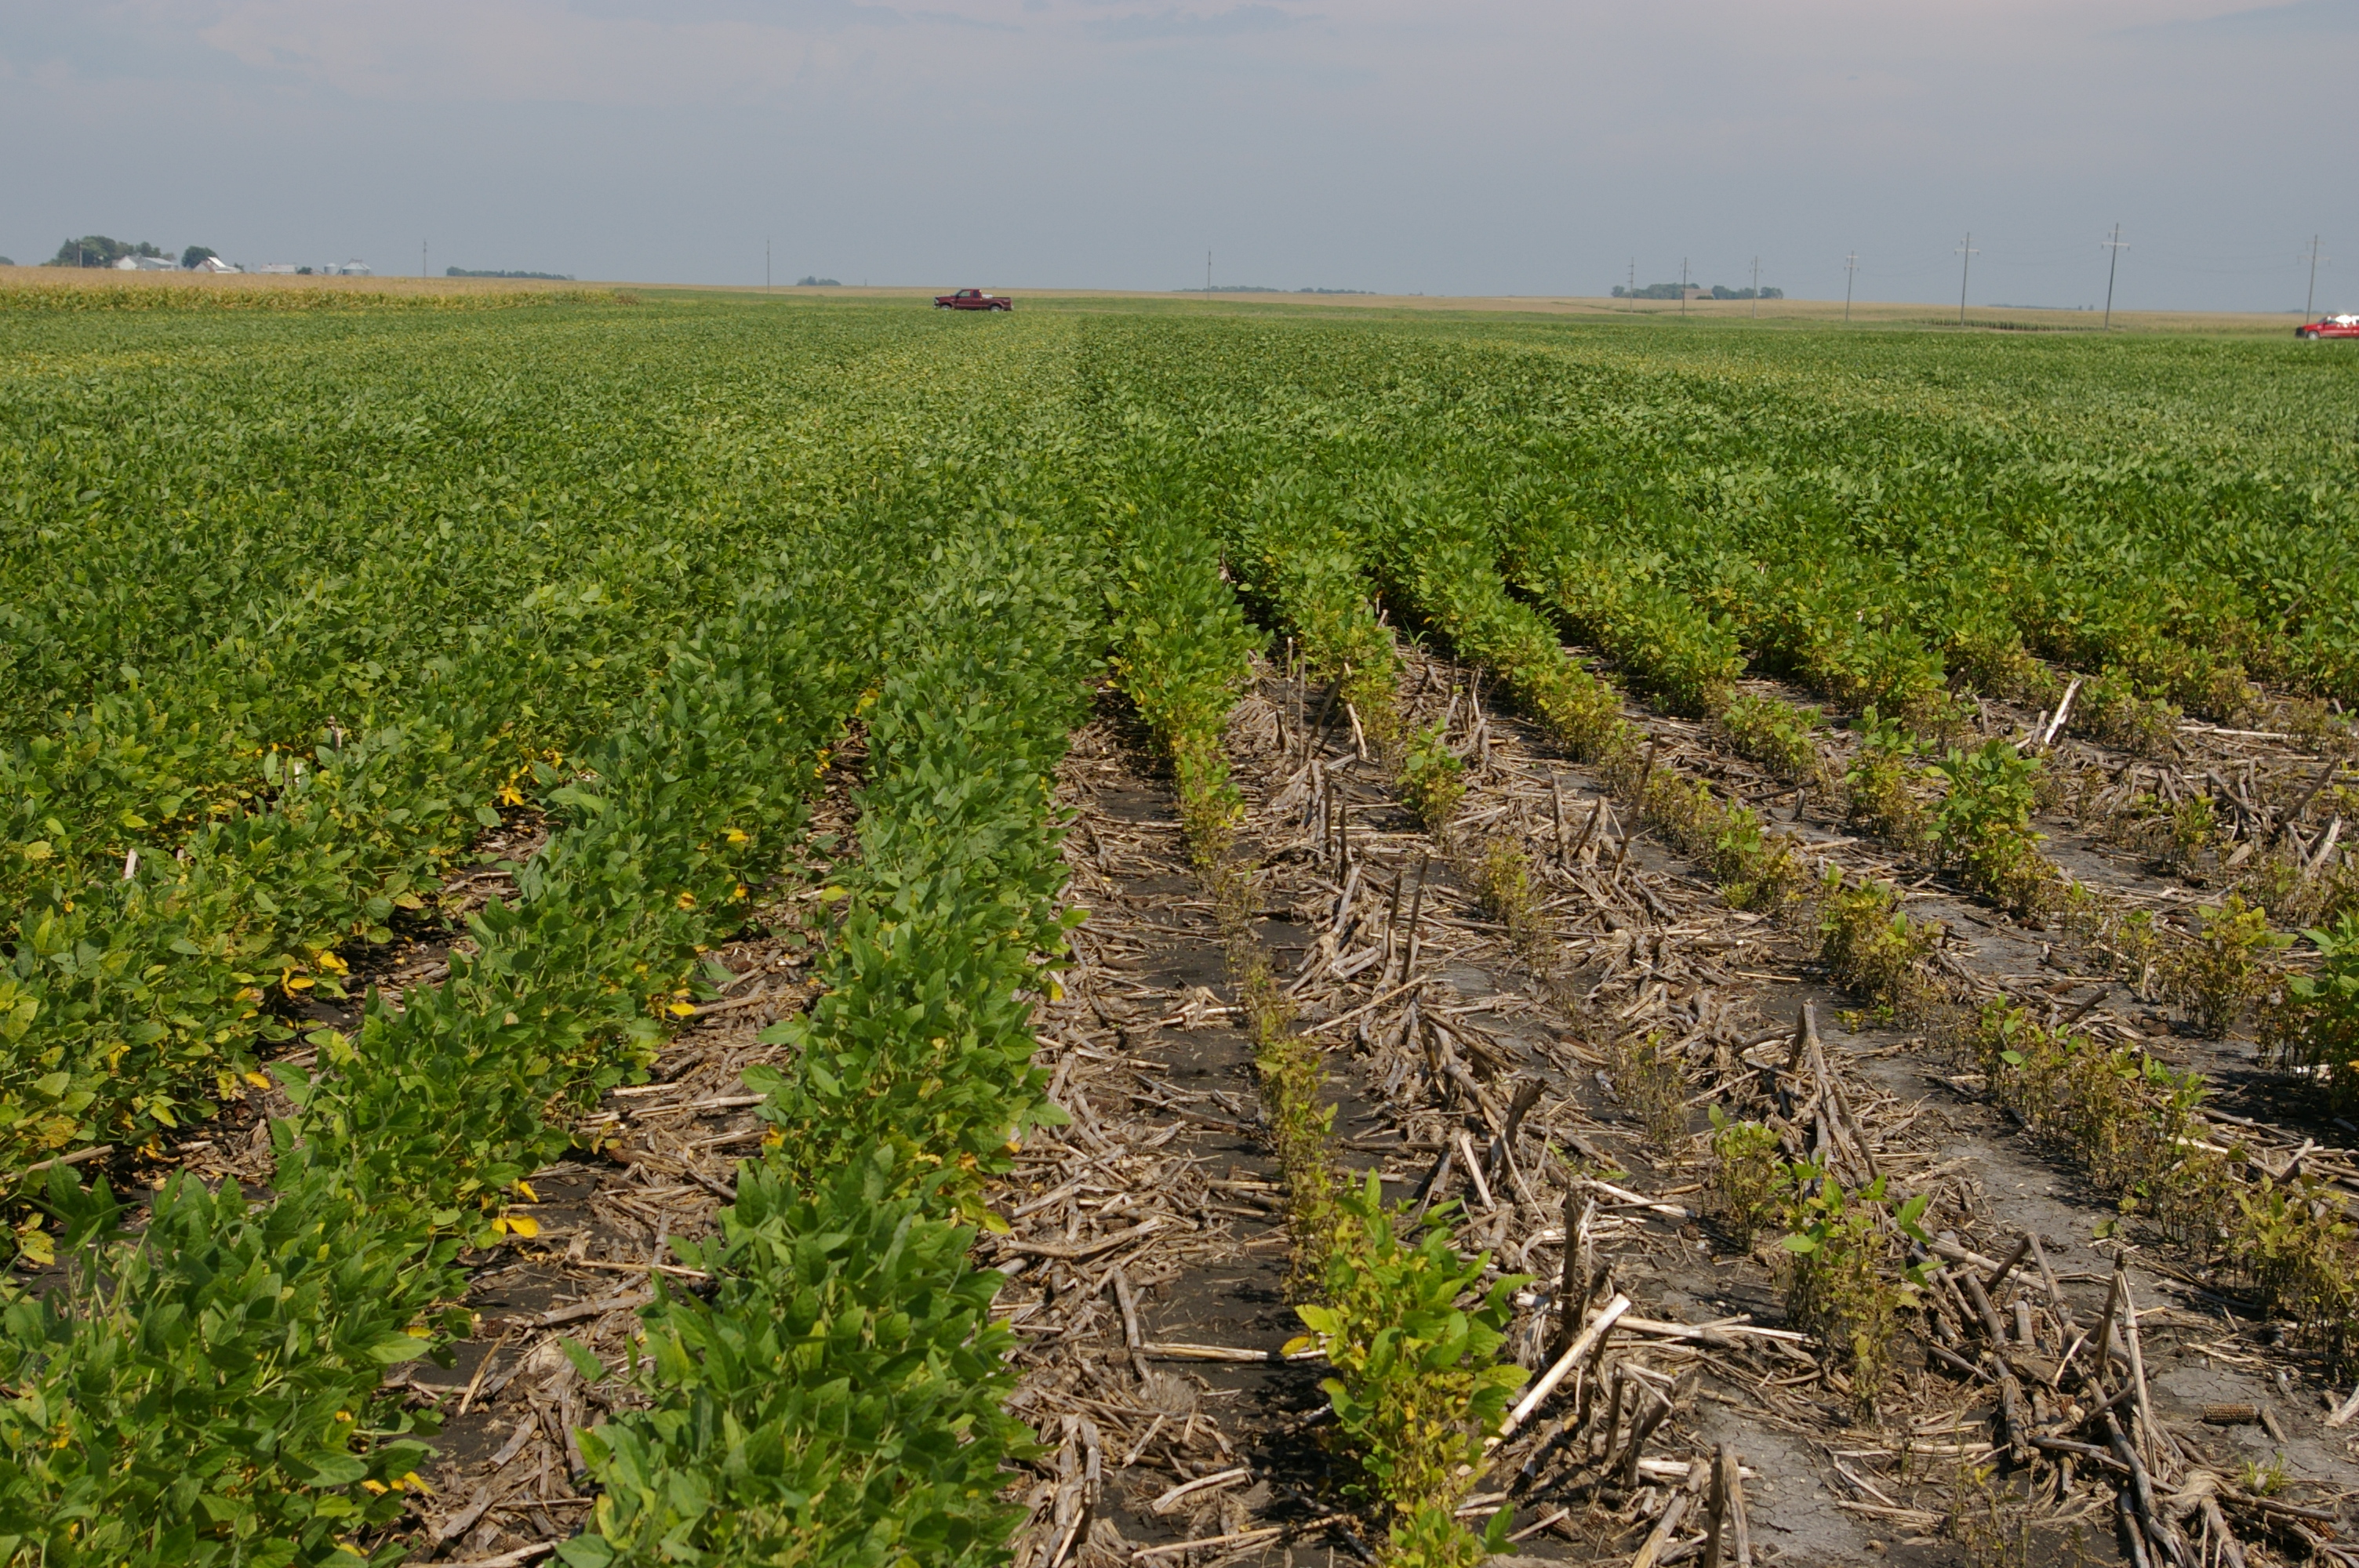 Soybeans susceptible to soybean cyst nematode (right) compared to a more resistant variety.